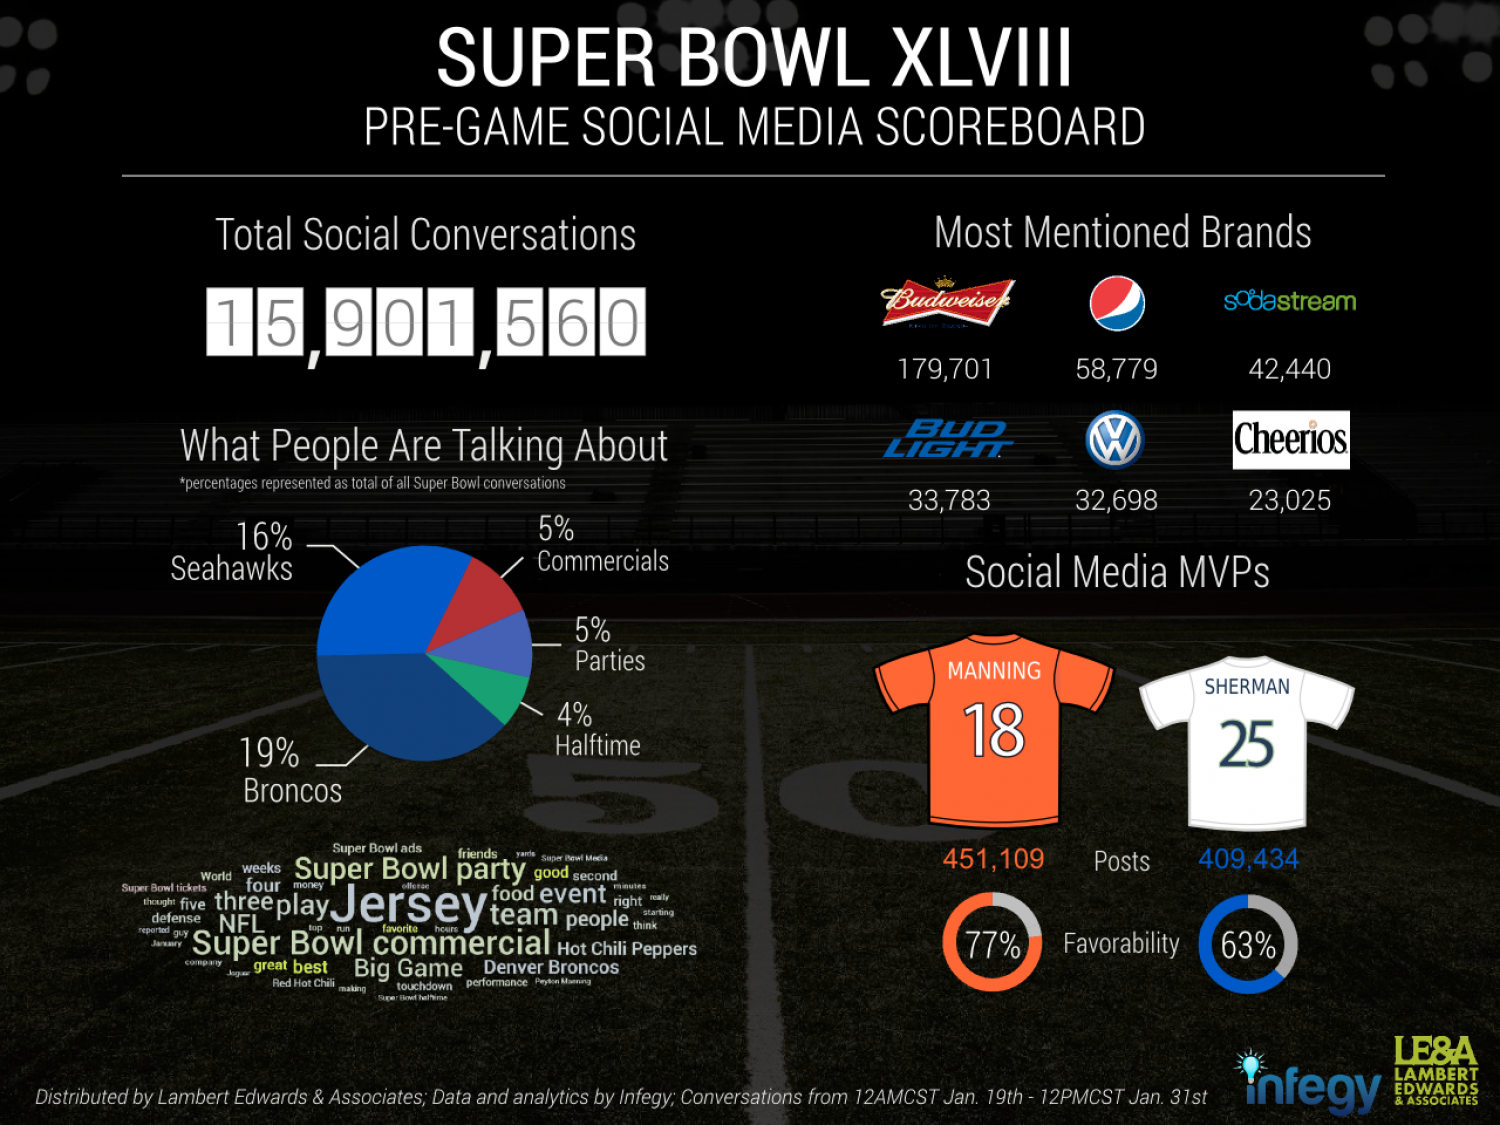 Super Bowl 2014 Pre-Game Social Media Scoreboard Infographic